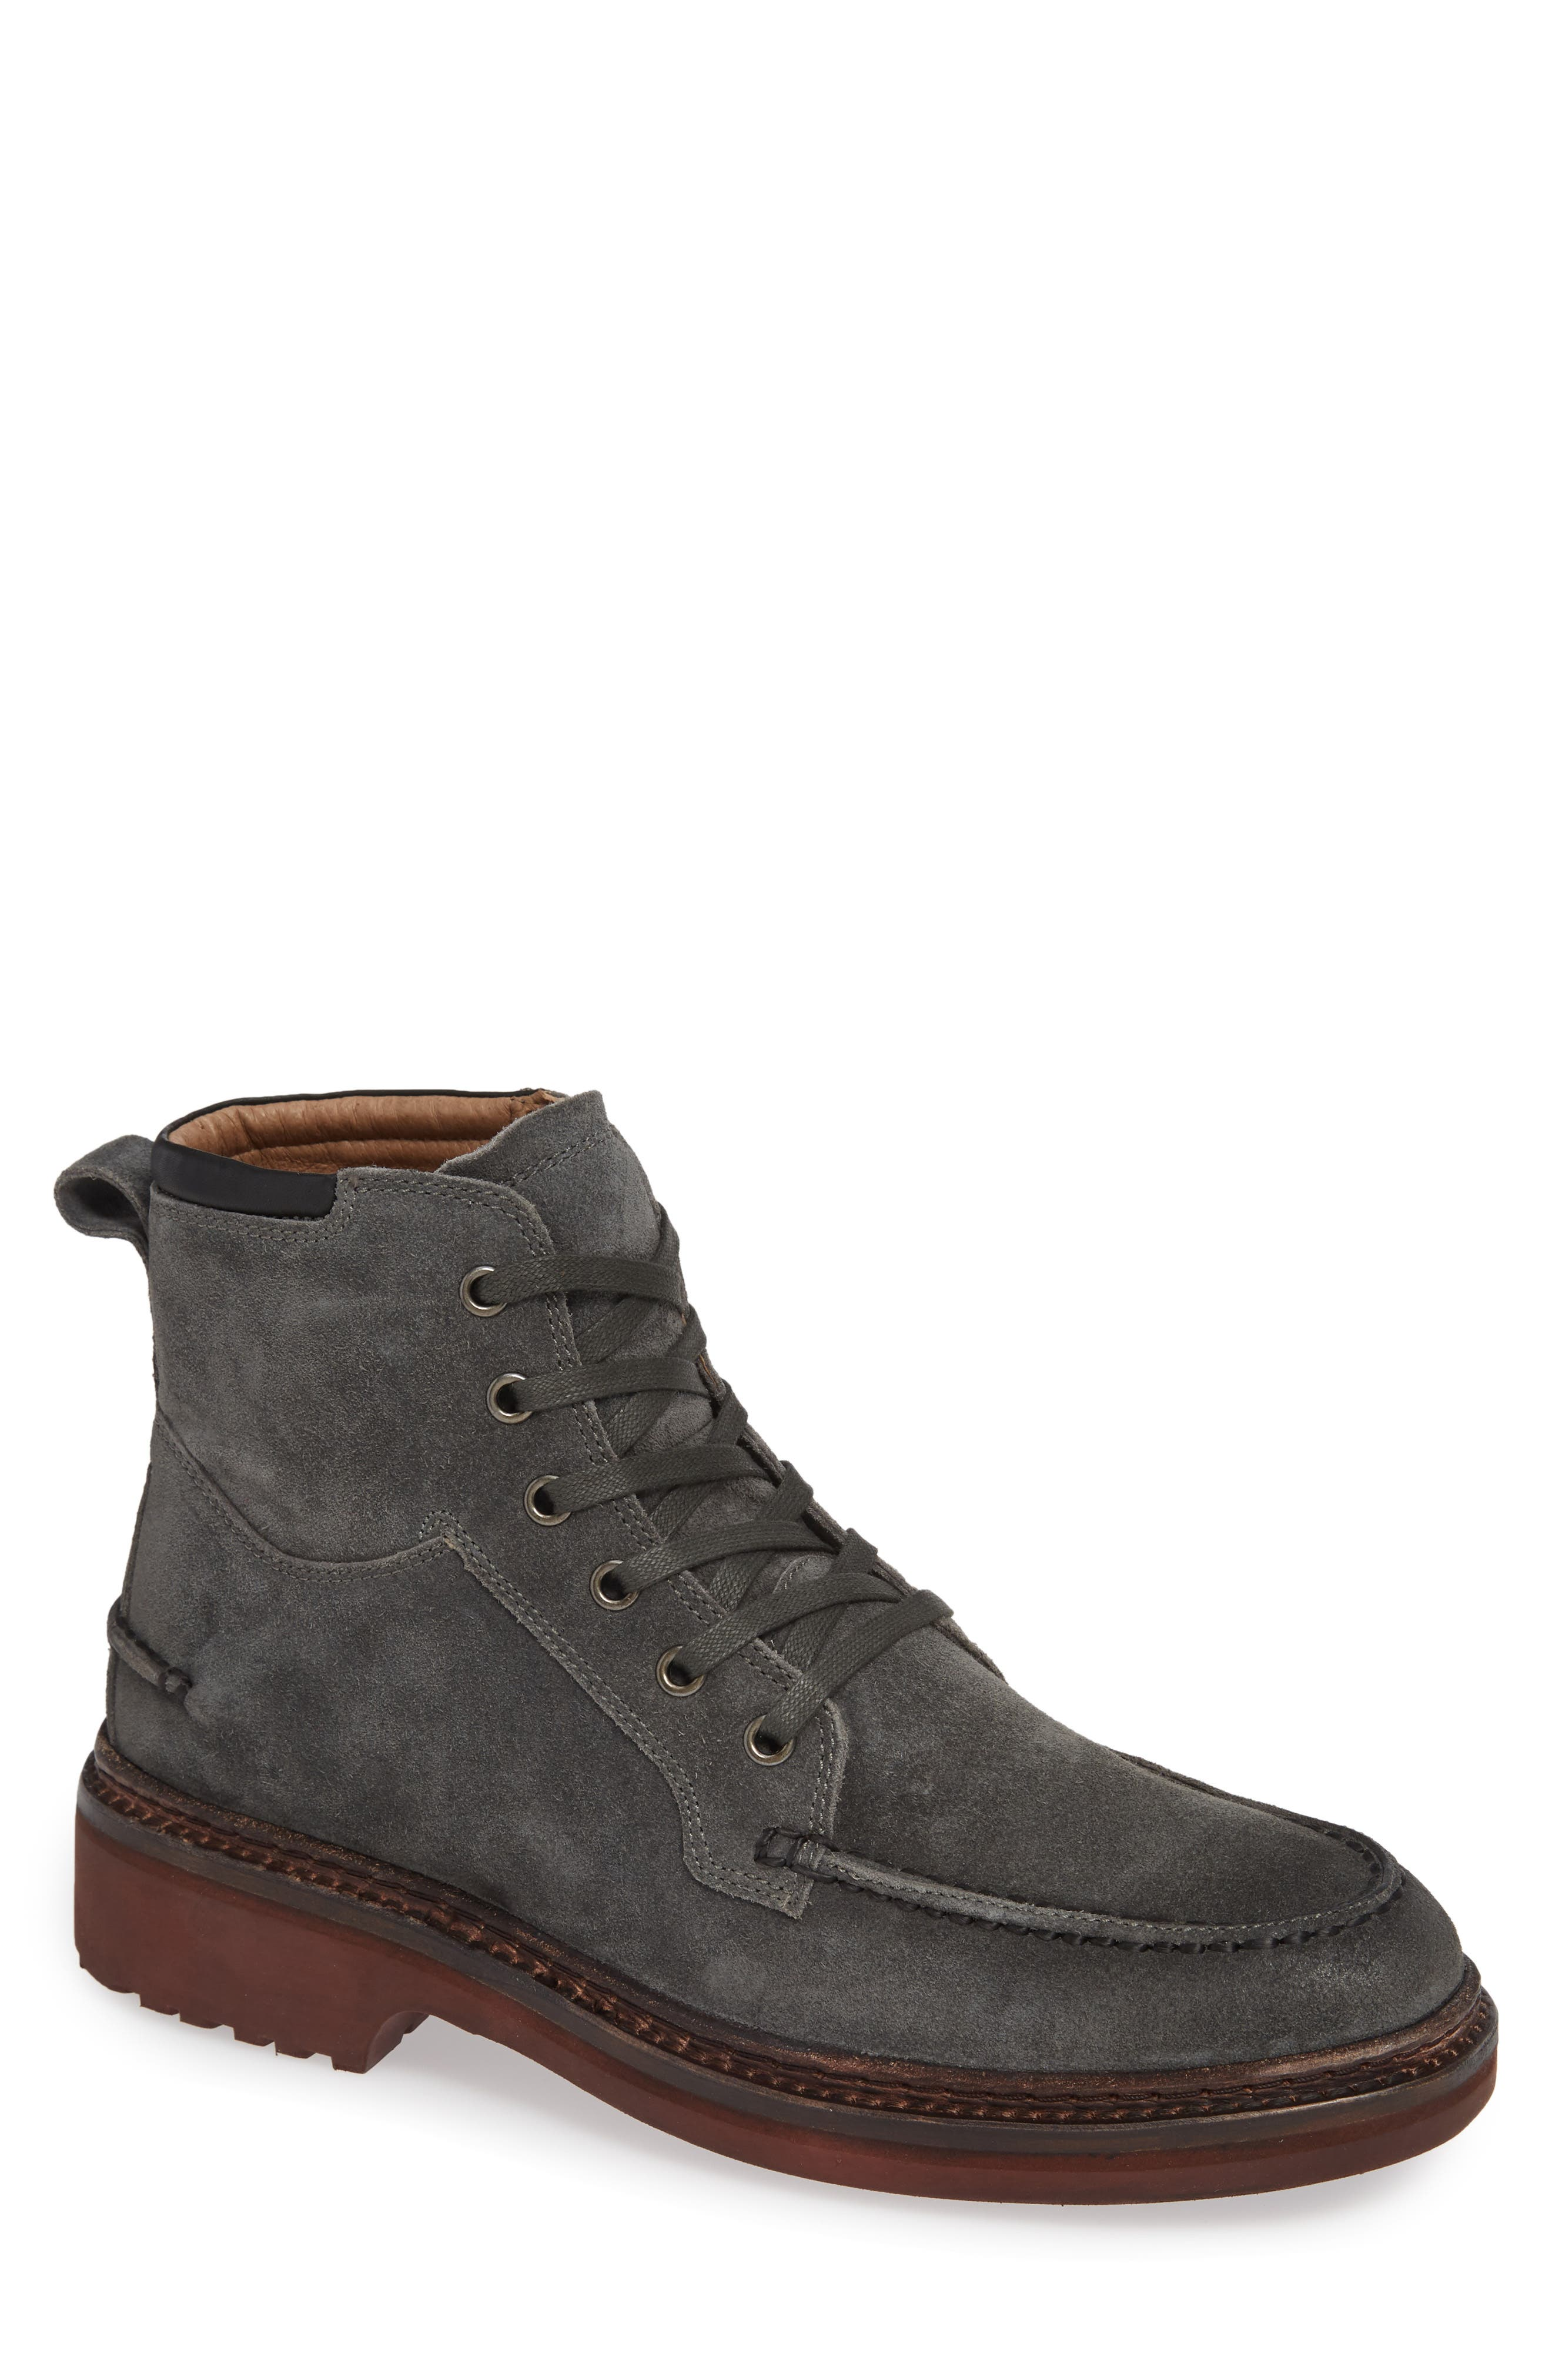 Cooper Work Boot,                         Main,                         color, 022